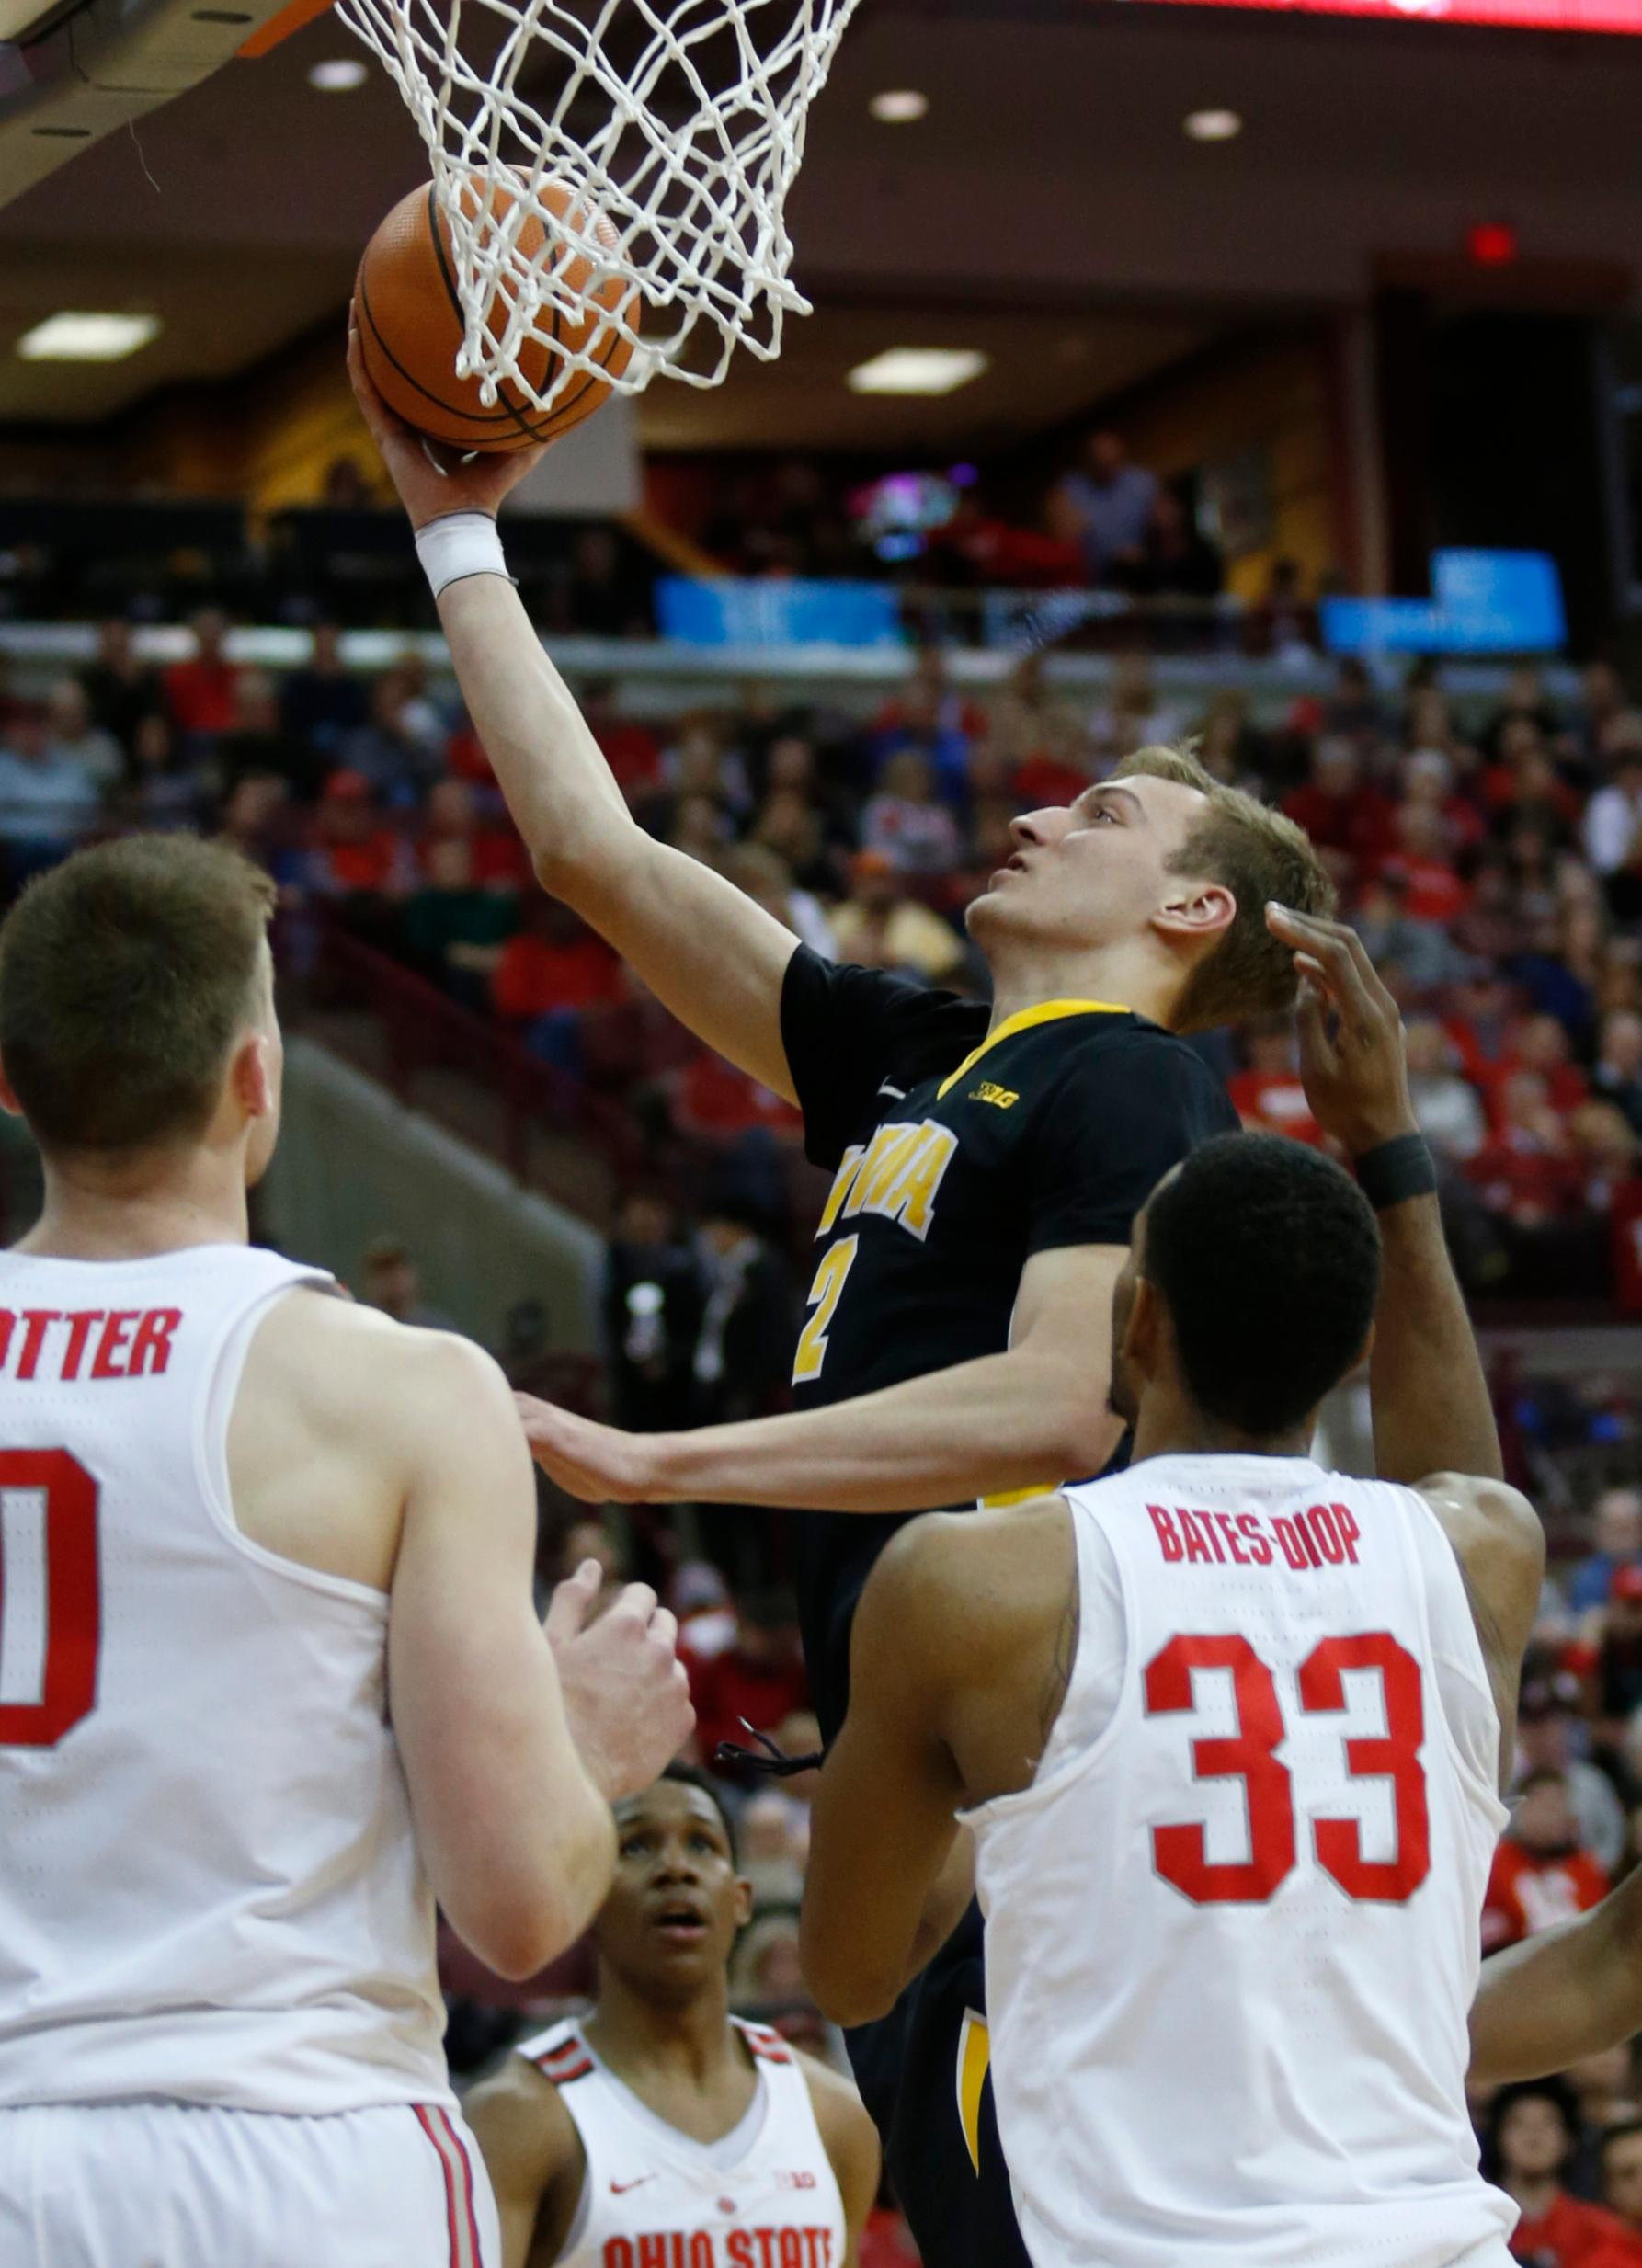 Iowa forward Jack Nunge, center, goes up for a shot between Ohio State center Micah Potter, left, and forward Keita Bates-Diop during the first half of an NCAA college basketball game in Columbus, Ohio, Saturday, Feb. 10, 2018. (AP Photo/Paul Vernon)